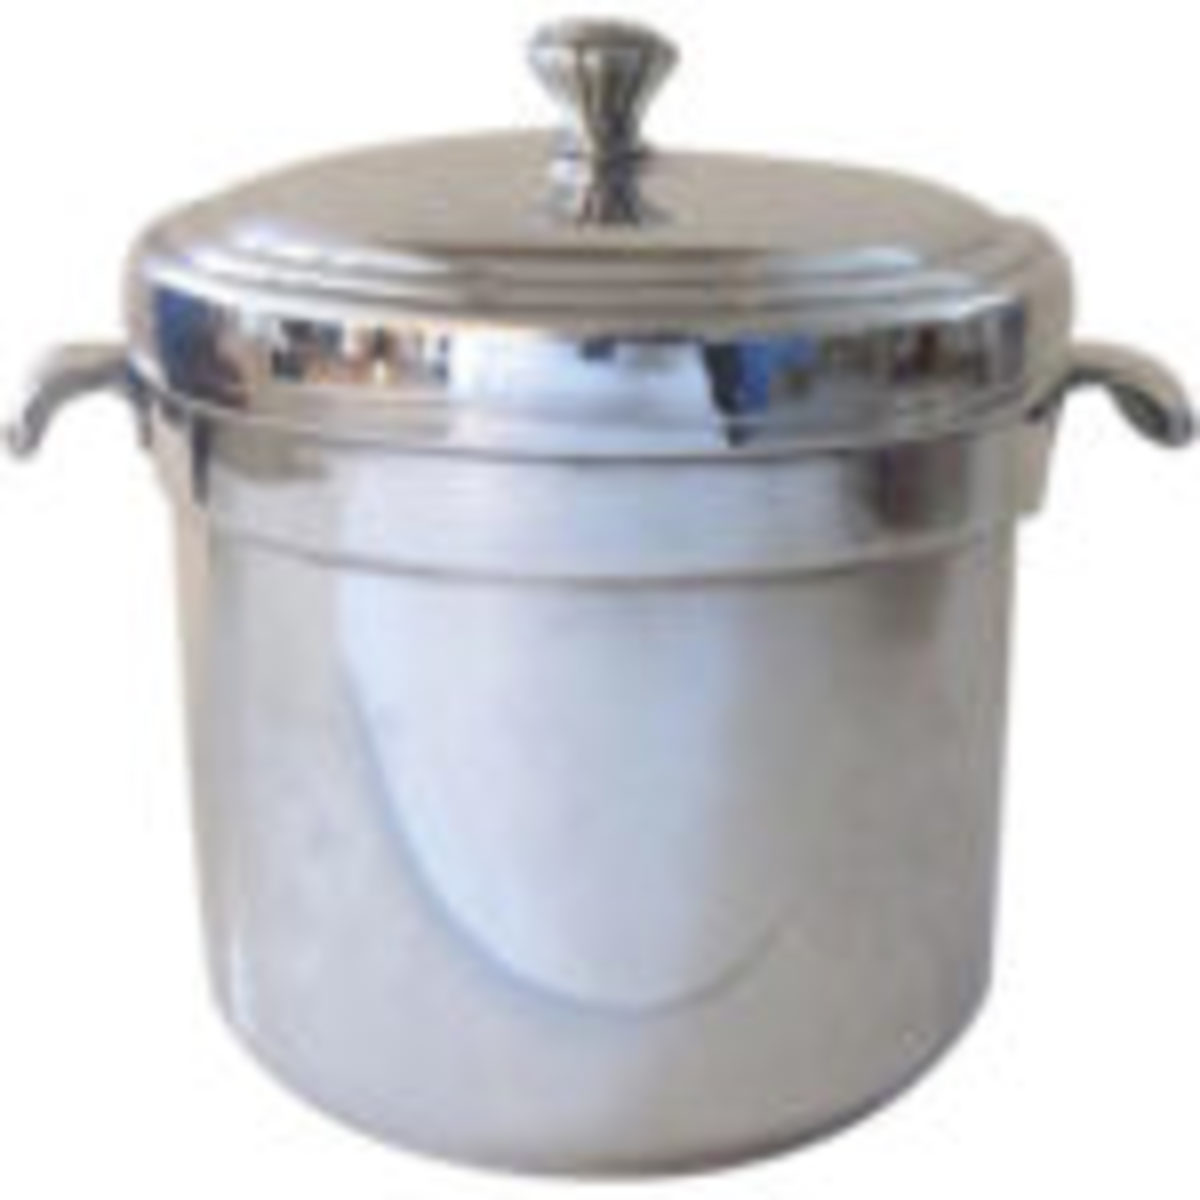 International Silver Co silver plated ice bucket with liner, measures 8-1/2 inches tall, 9-1/4 inches wide including handles, 5-1/2 inches diameter. $24Courtesy of Black Tulip Antiques on Ruby Lane; https://www.rubylane.com/shop/blacktulip